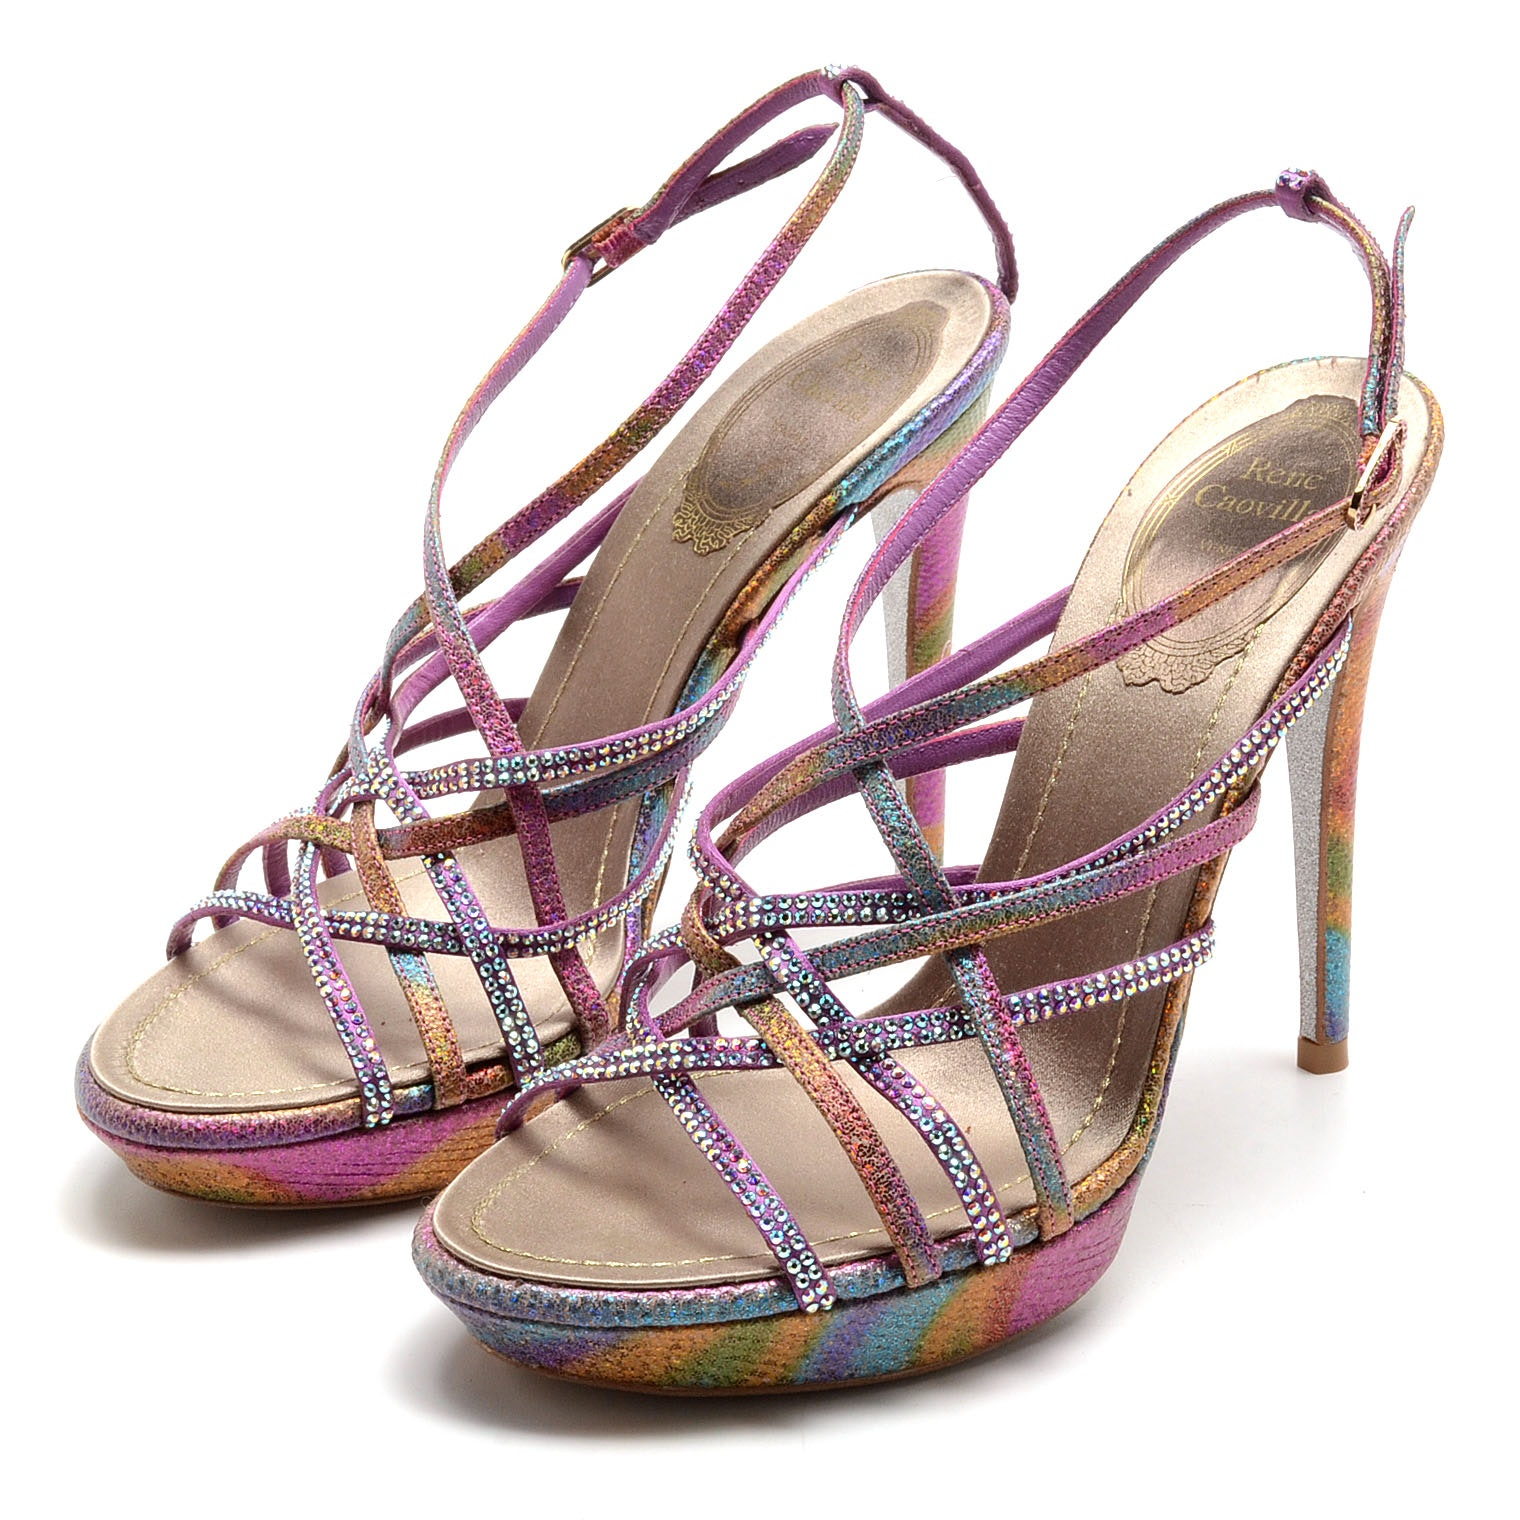 Rene Caovilla Glittery Open Toe Strappy Platform Sling Back Dress Sandals with Aurora Borealis Crystal Rhinestones